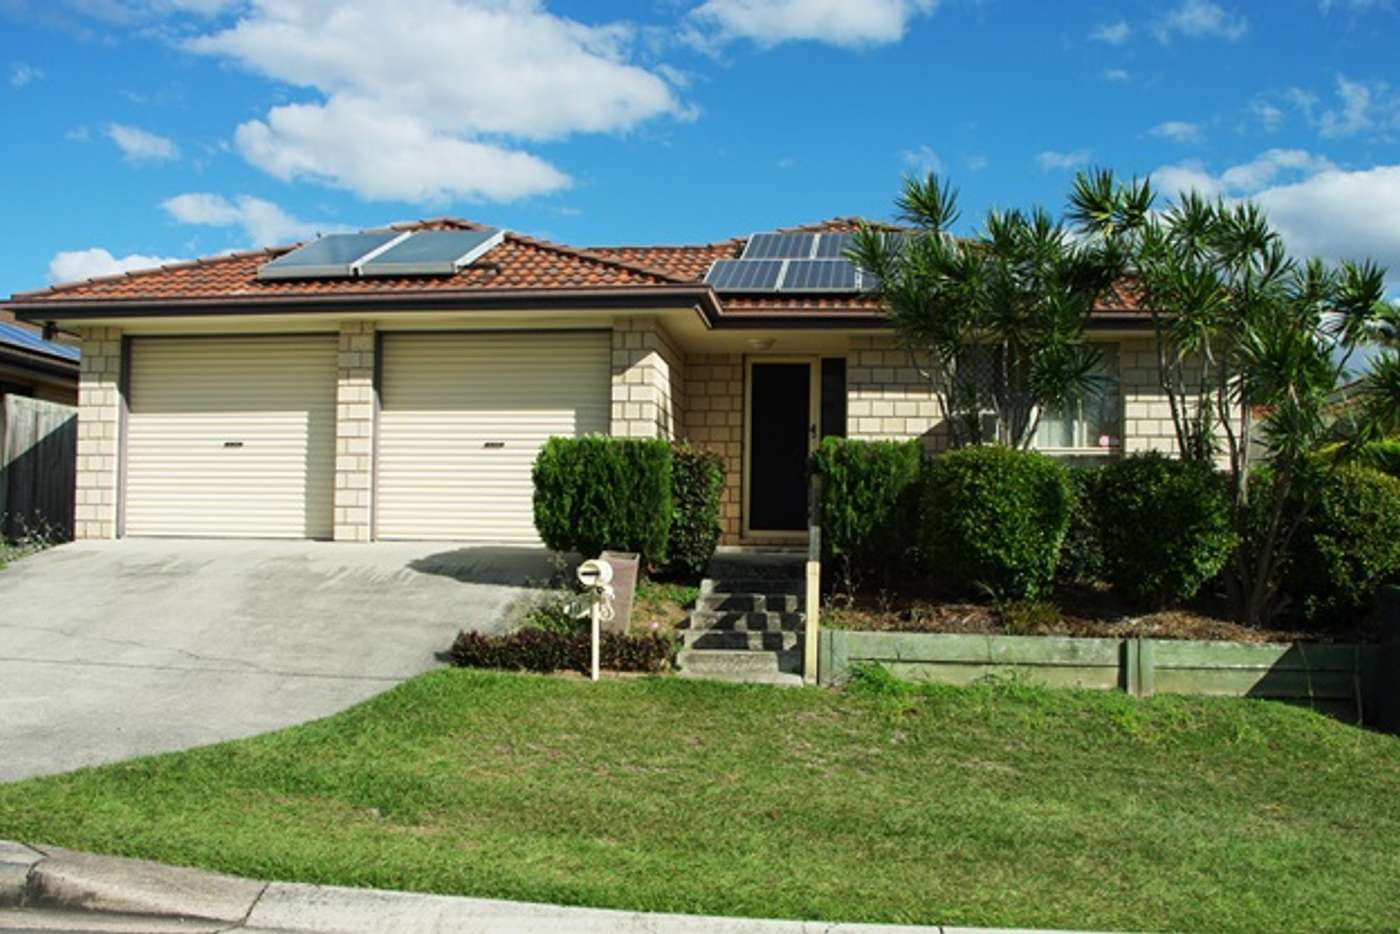 Main view of Homely house listing, 10 Sunningdale Street, Oxley QLD 4075